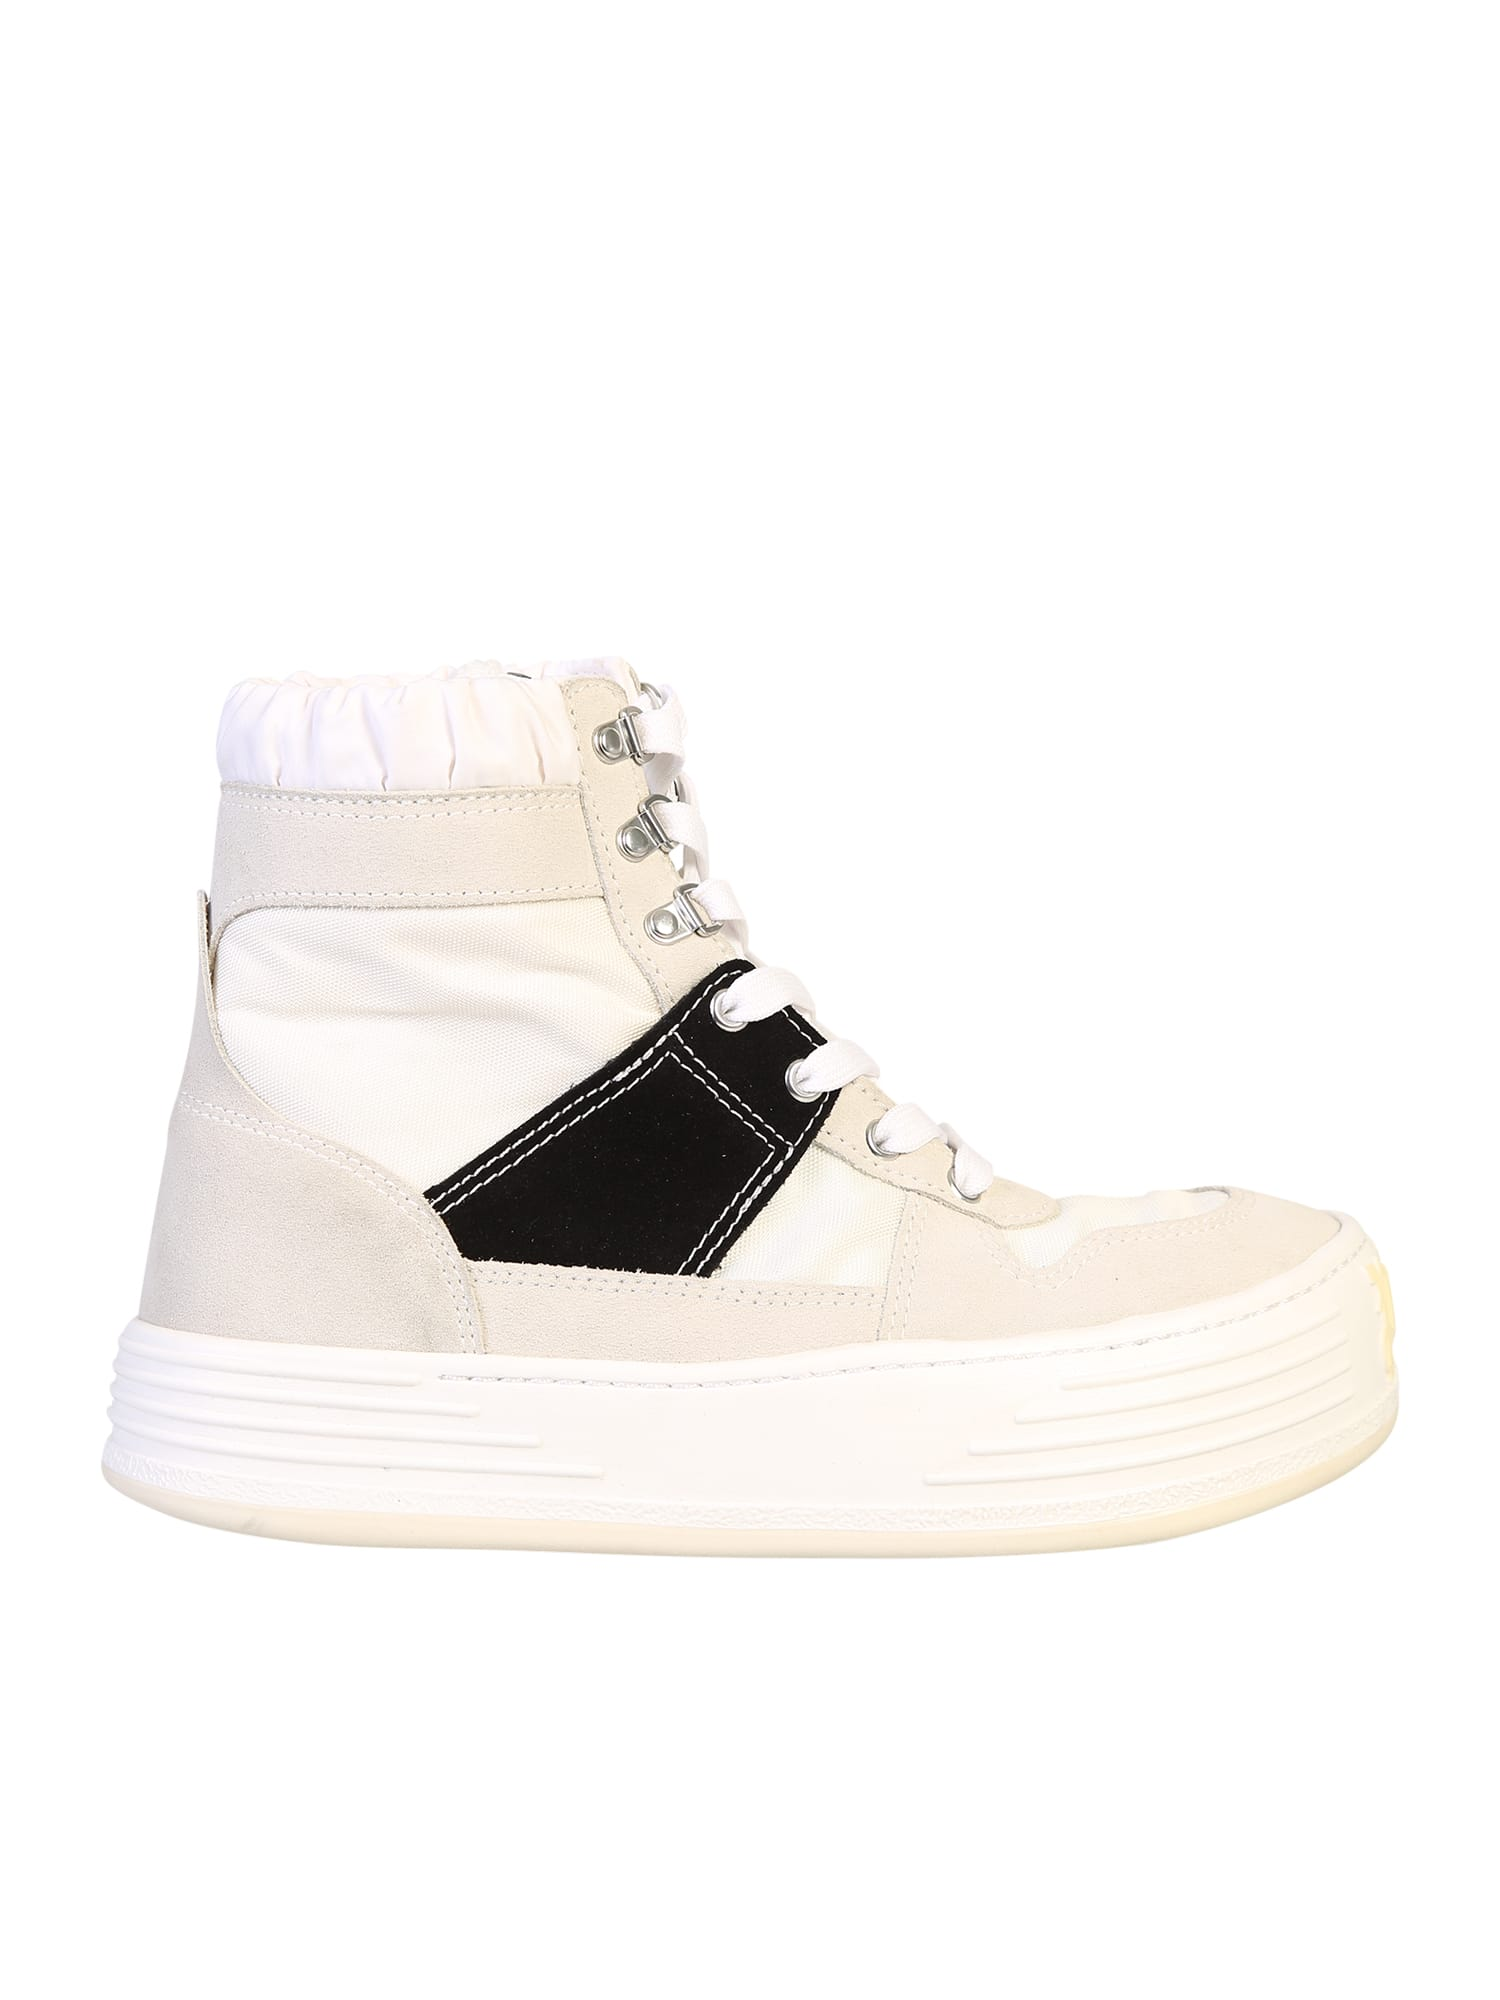 Palm Angels Leathers LACE-UP SNEAKERS